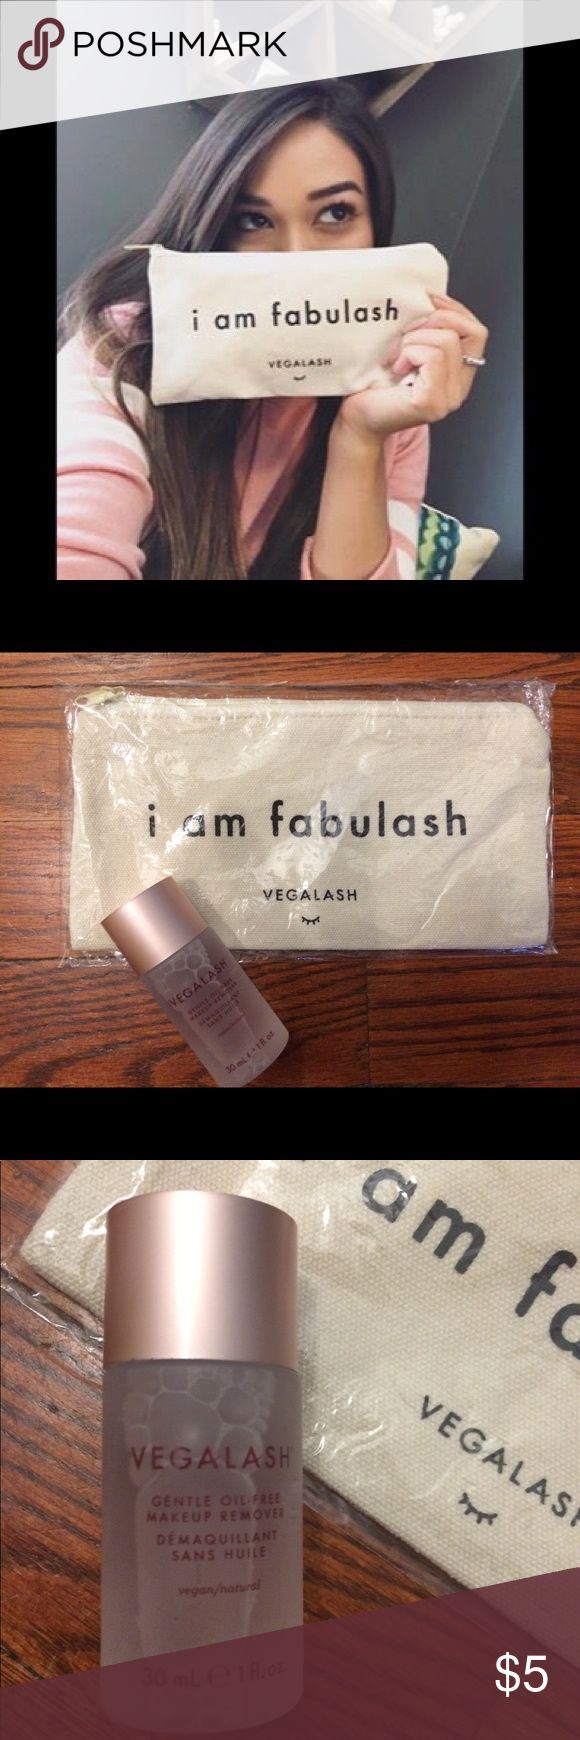 "Vegalash Bundle • Bag Makeup Remover Hair Elastic One ounce sample of Vegalash oil free makeup remover and ""I am fabulash"" makeup bag. Vegamour cancer couch foundation hair elastic. Sephora Accessories"